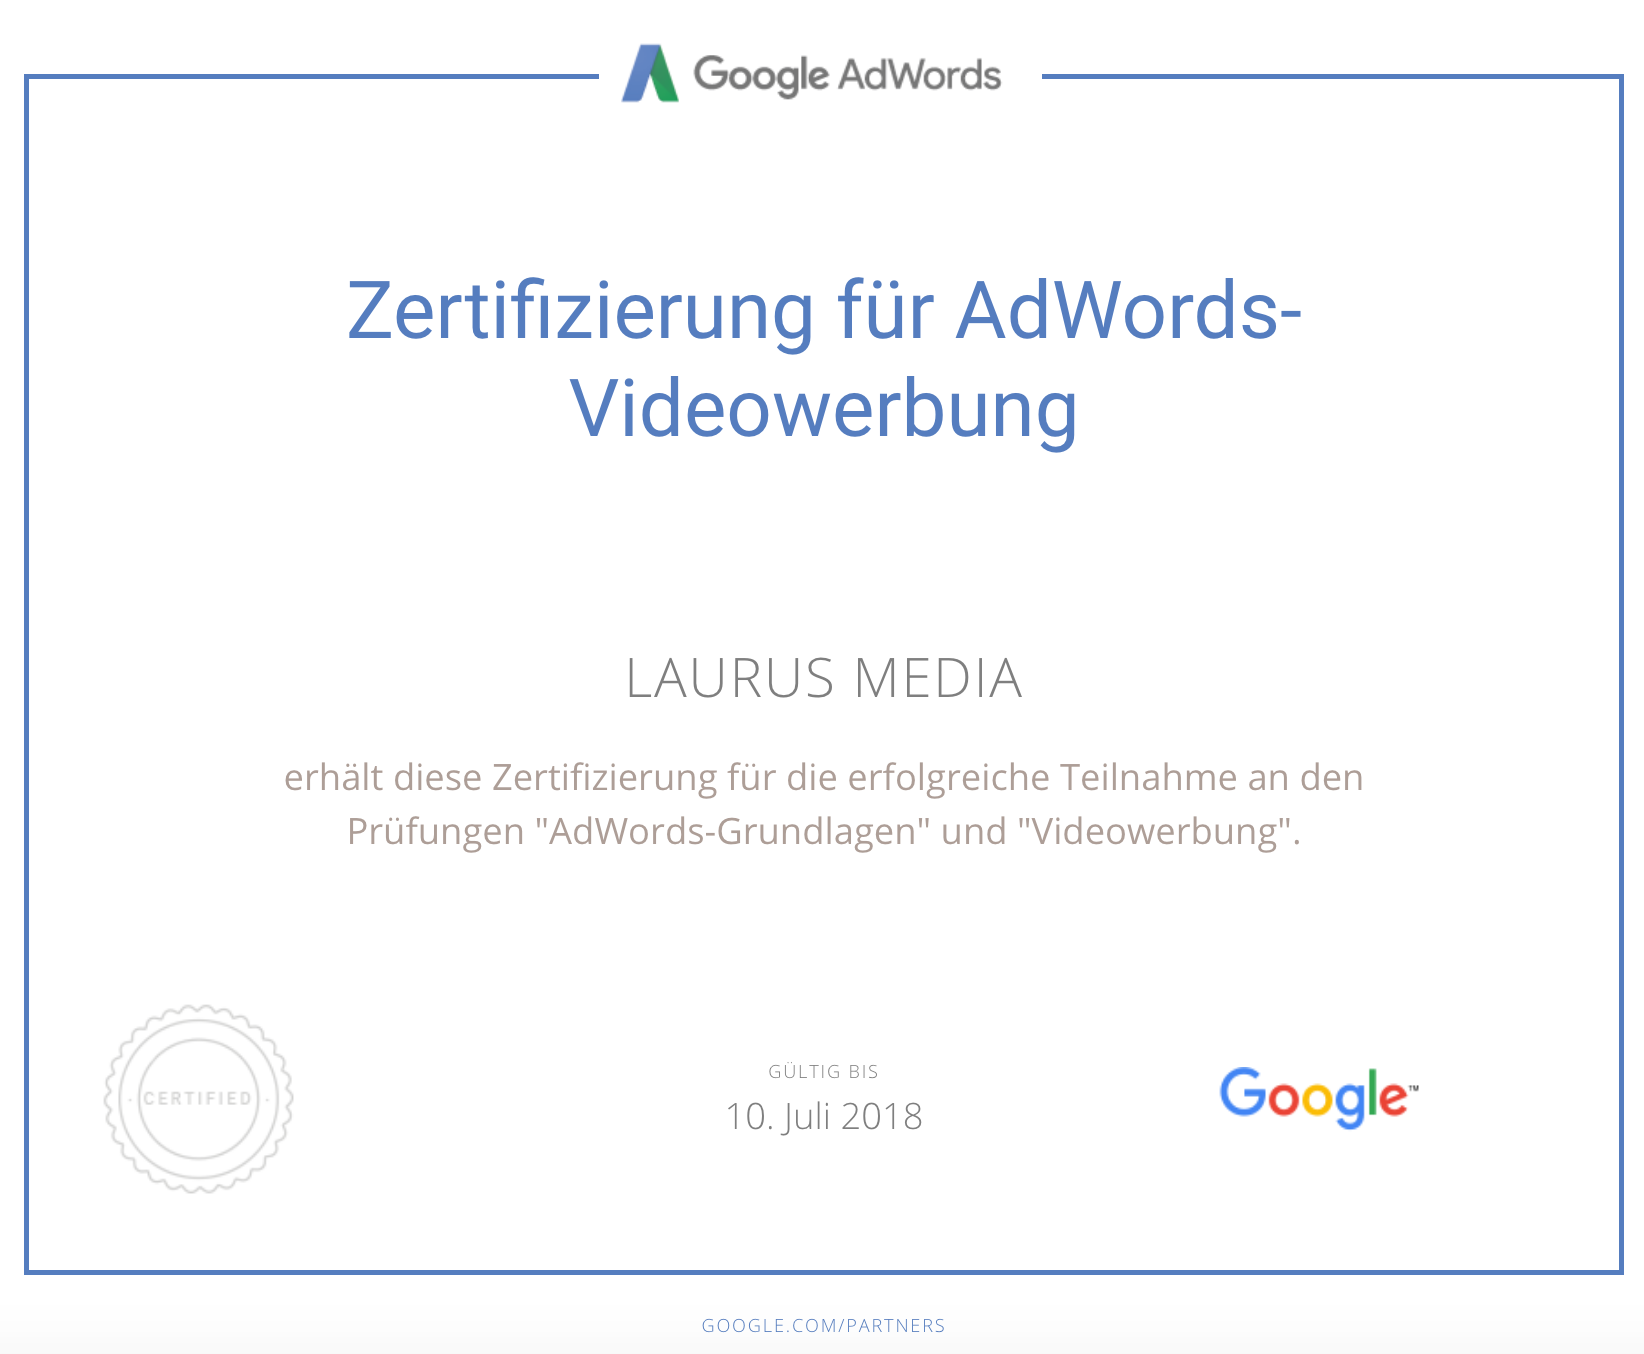 Google Adwords Certified - Laurus Media